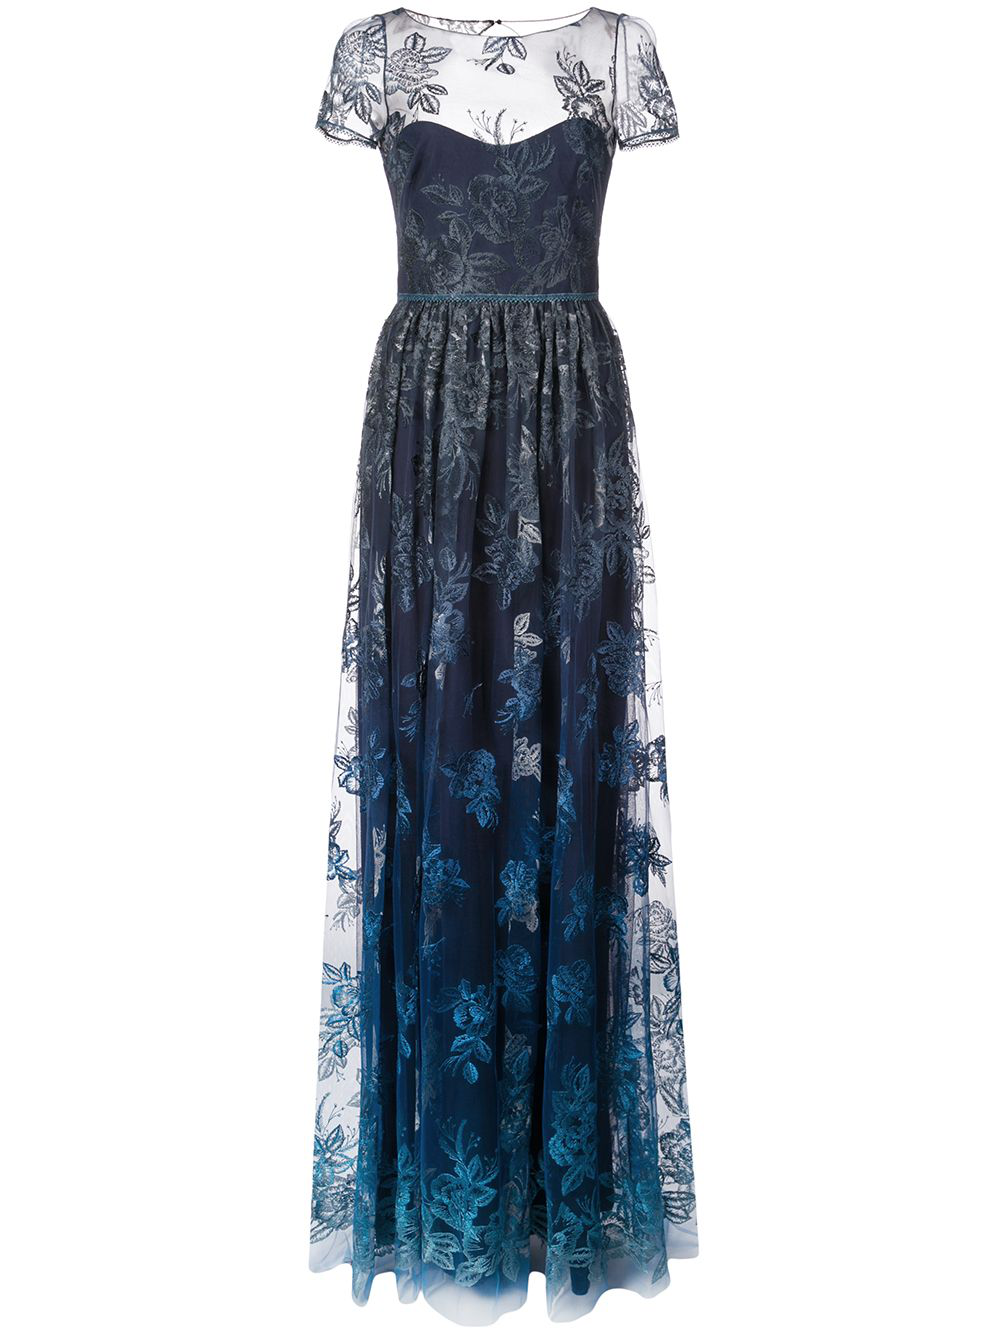 8a00621ed567e Marchesa Notte Sheer Floral Embroidered Gown - Blue